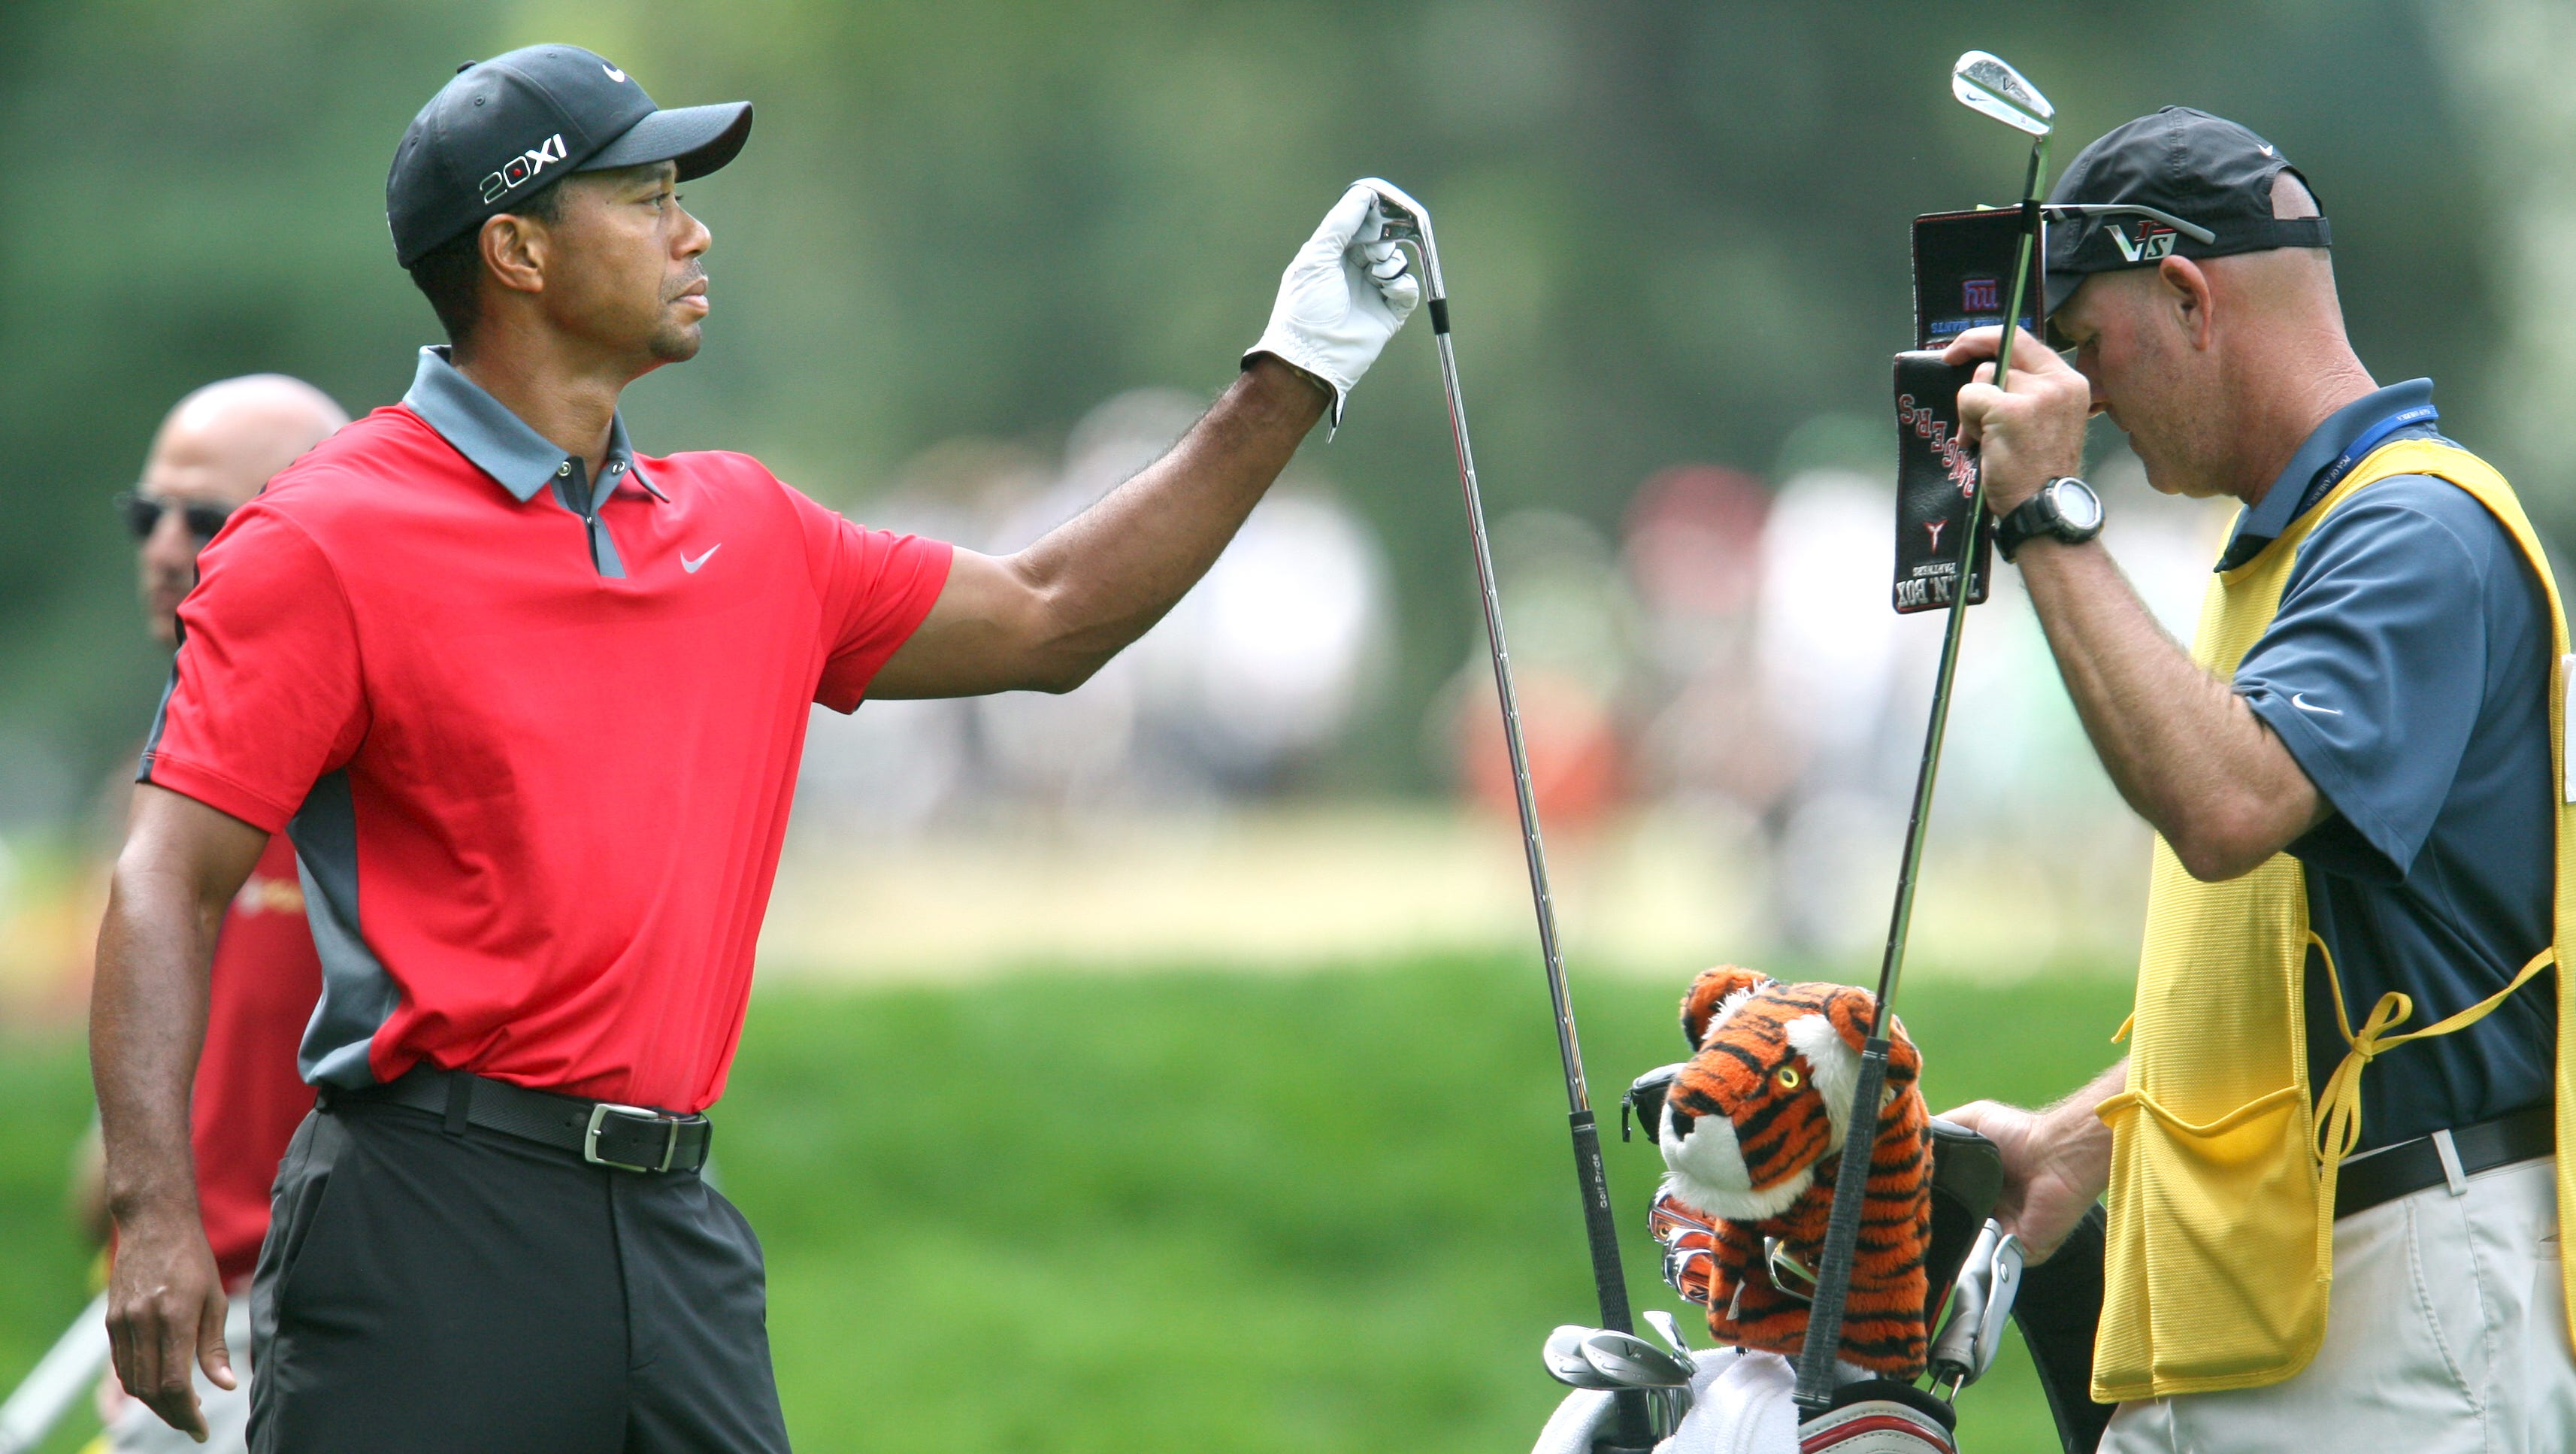 Tiger Woods picks up a club on the 4 fairway.